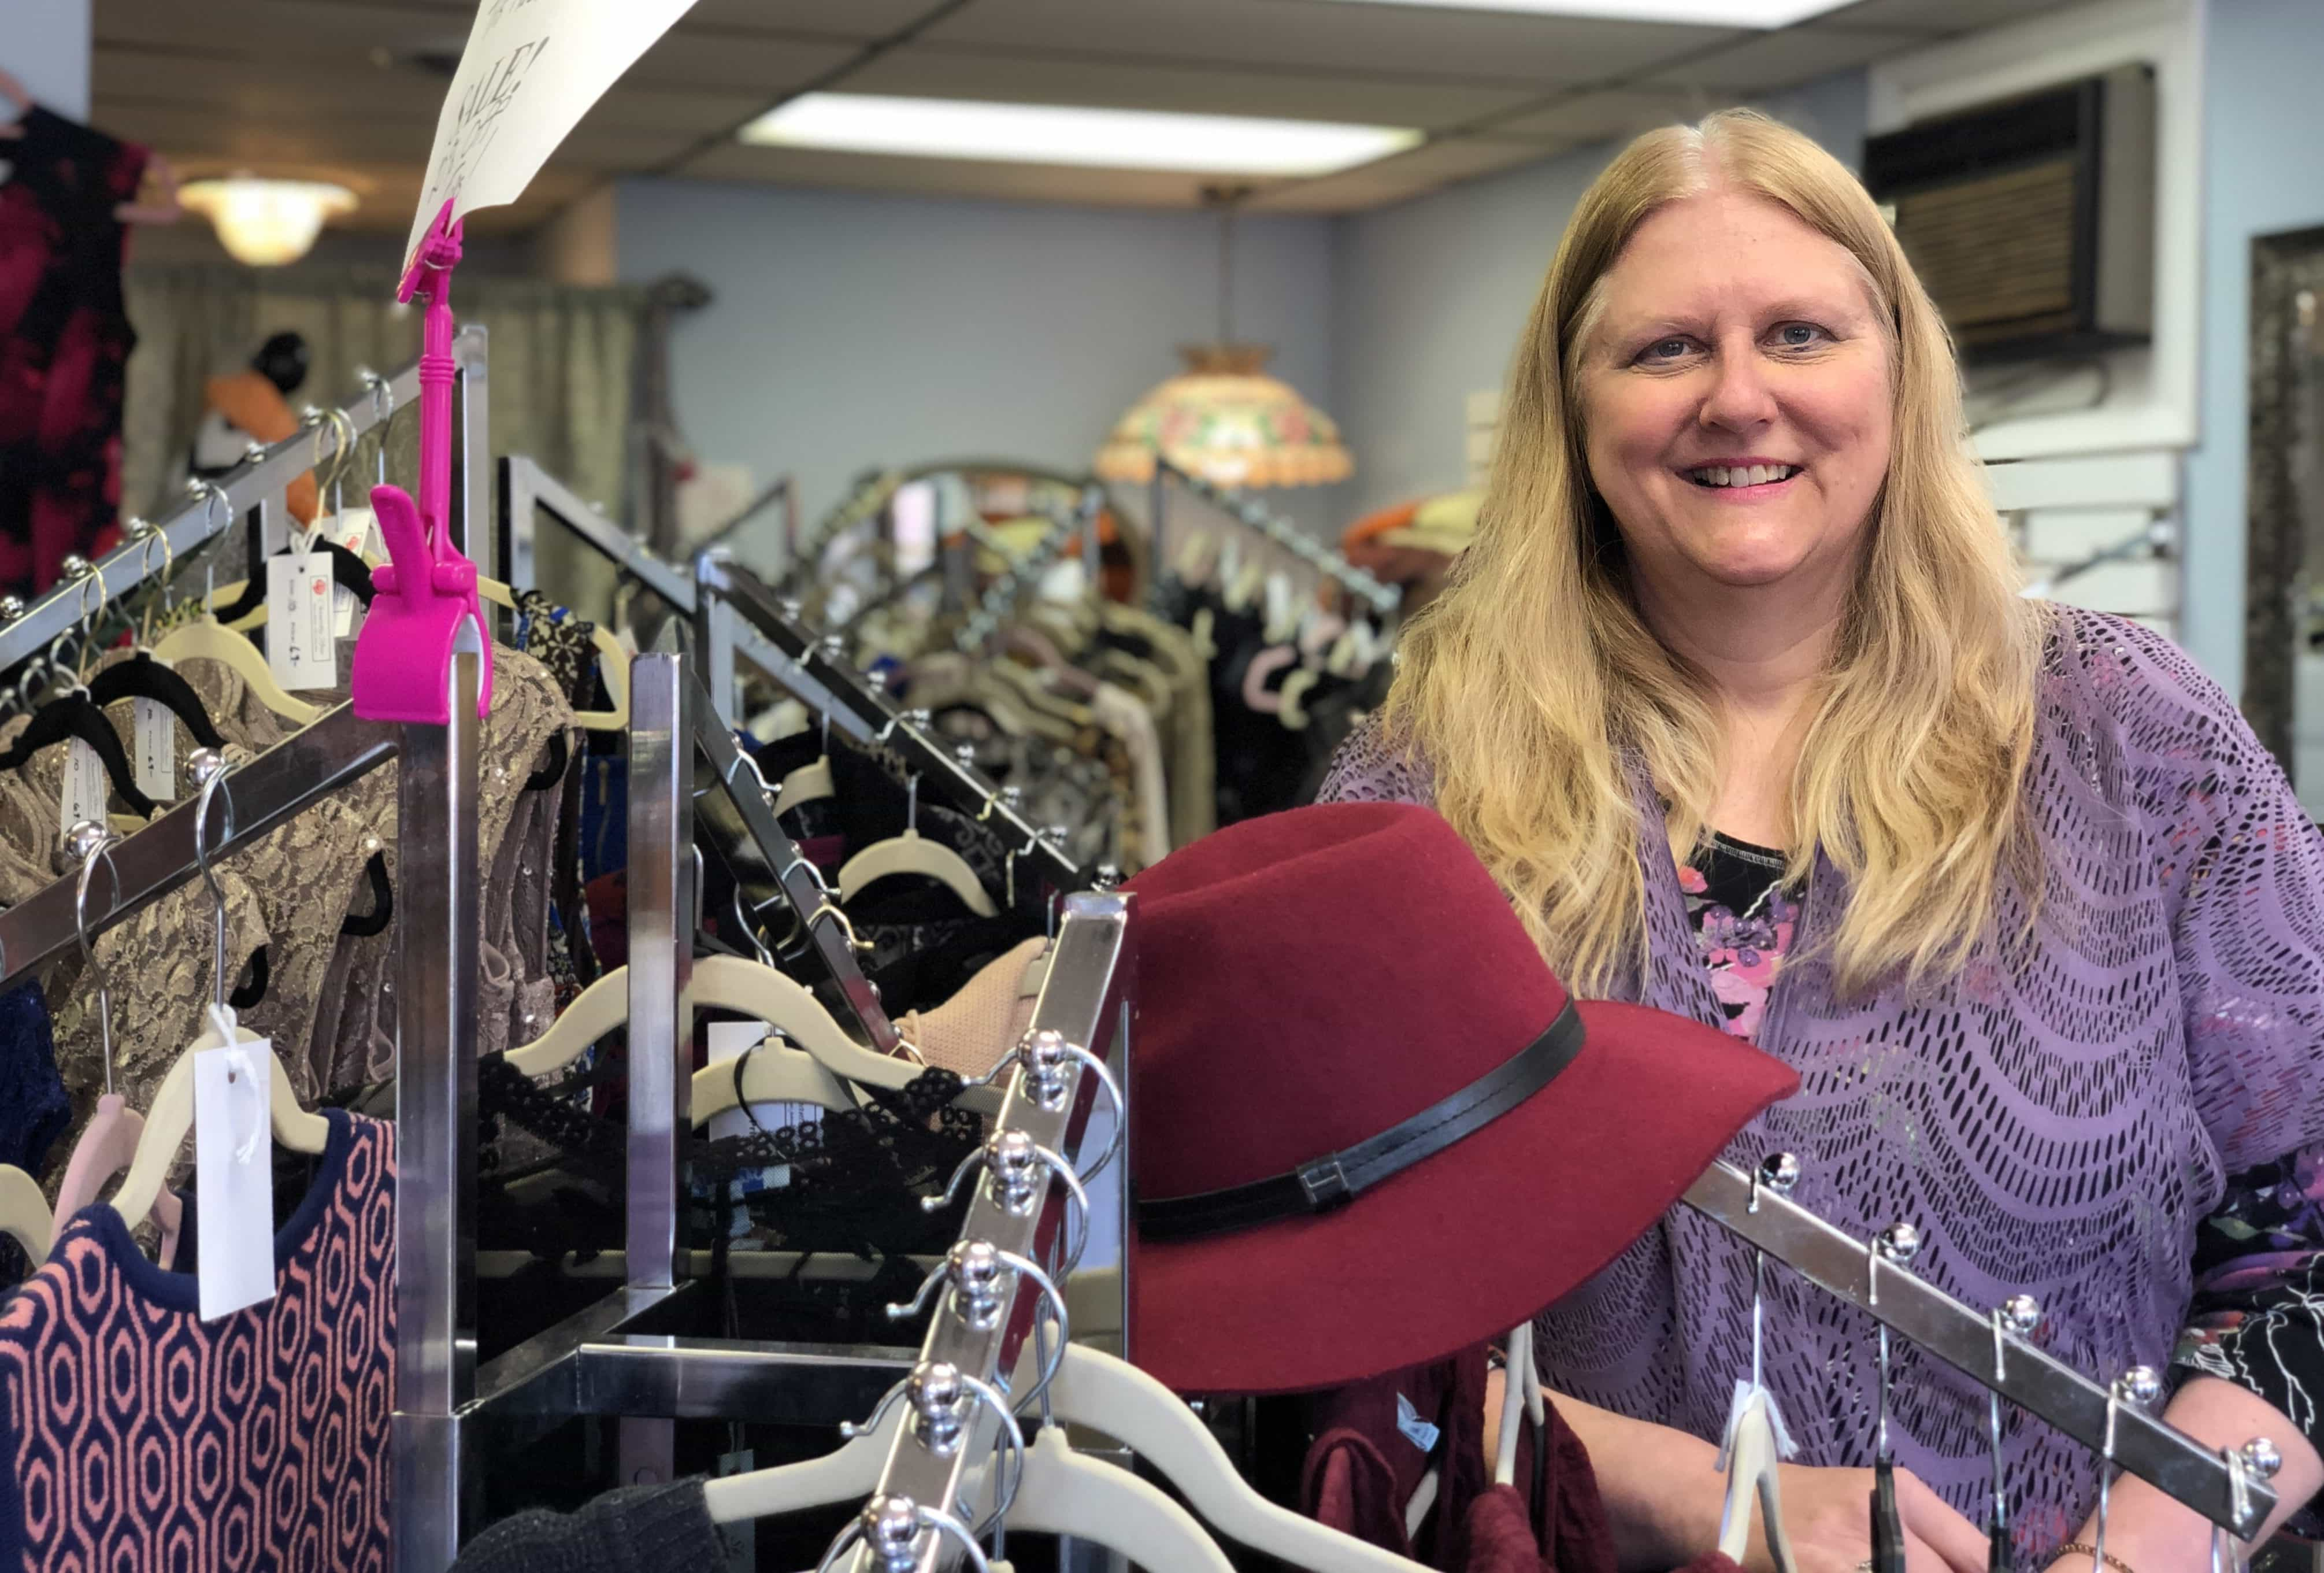 Michele McCarthy, owner of Chantilly Rose boutique in Lewiston, New York